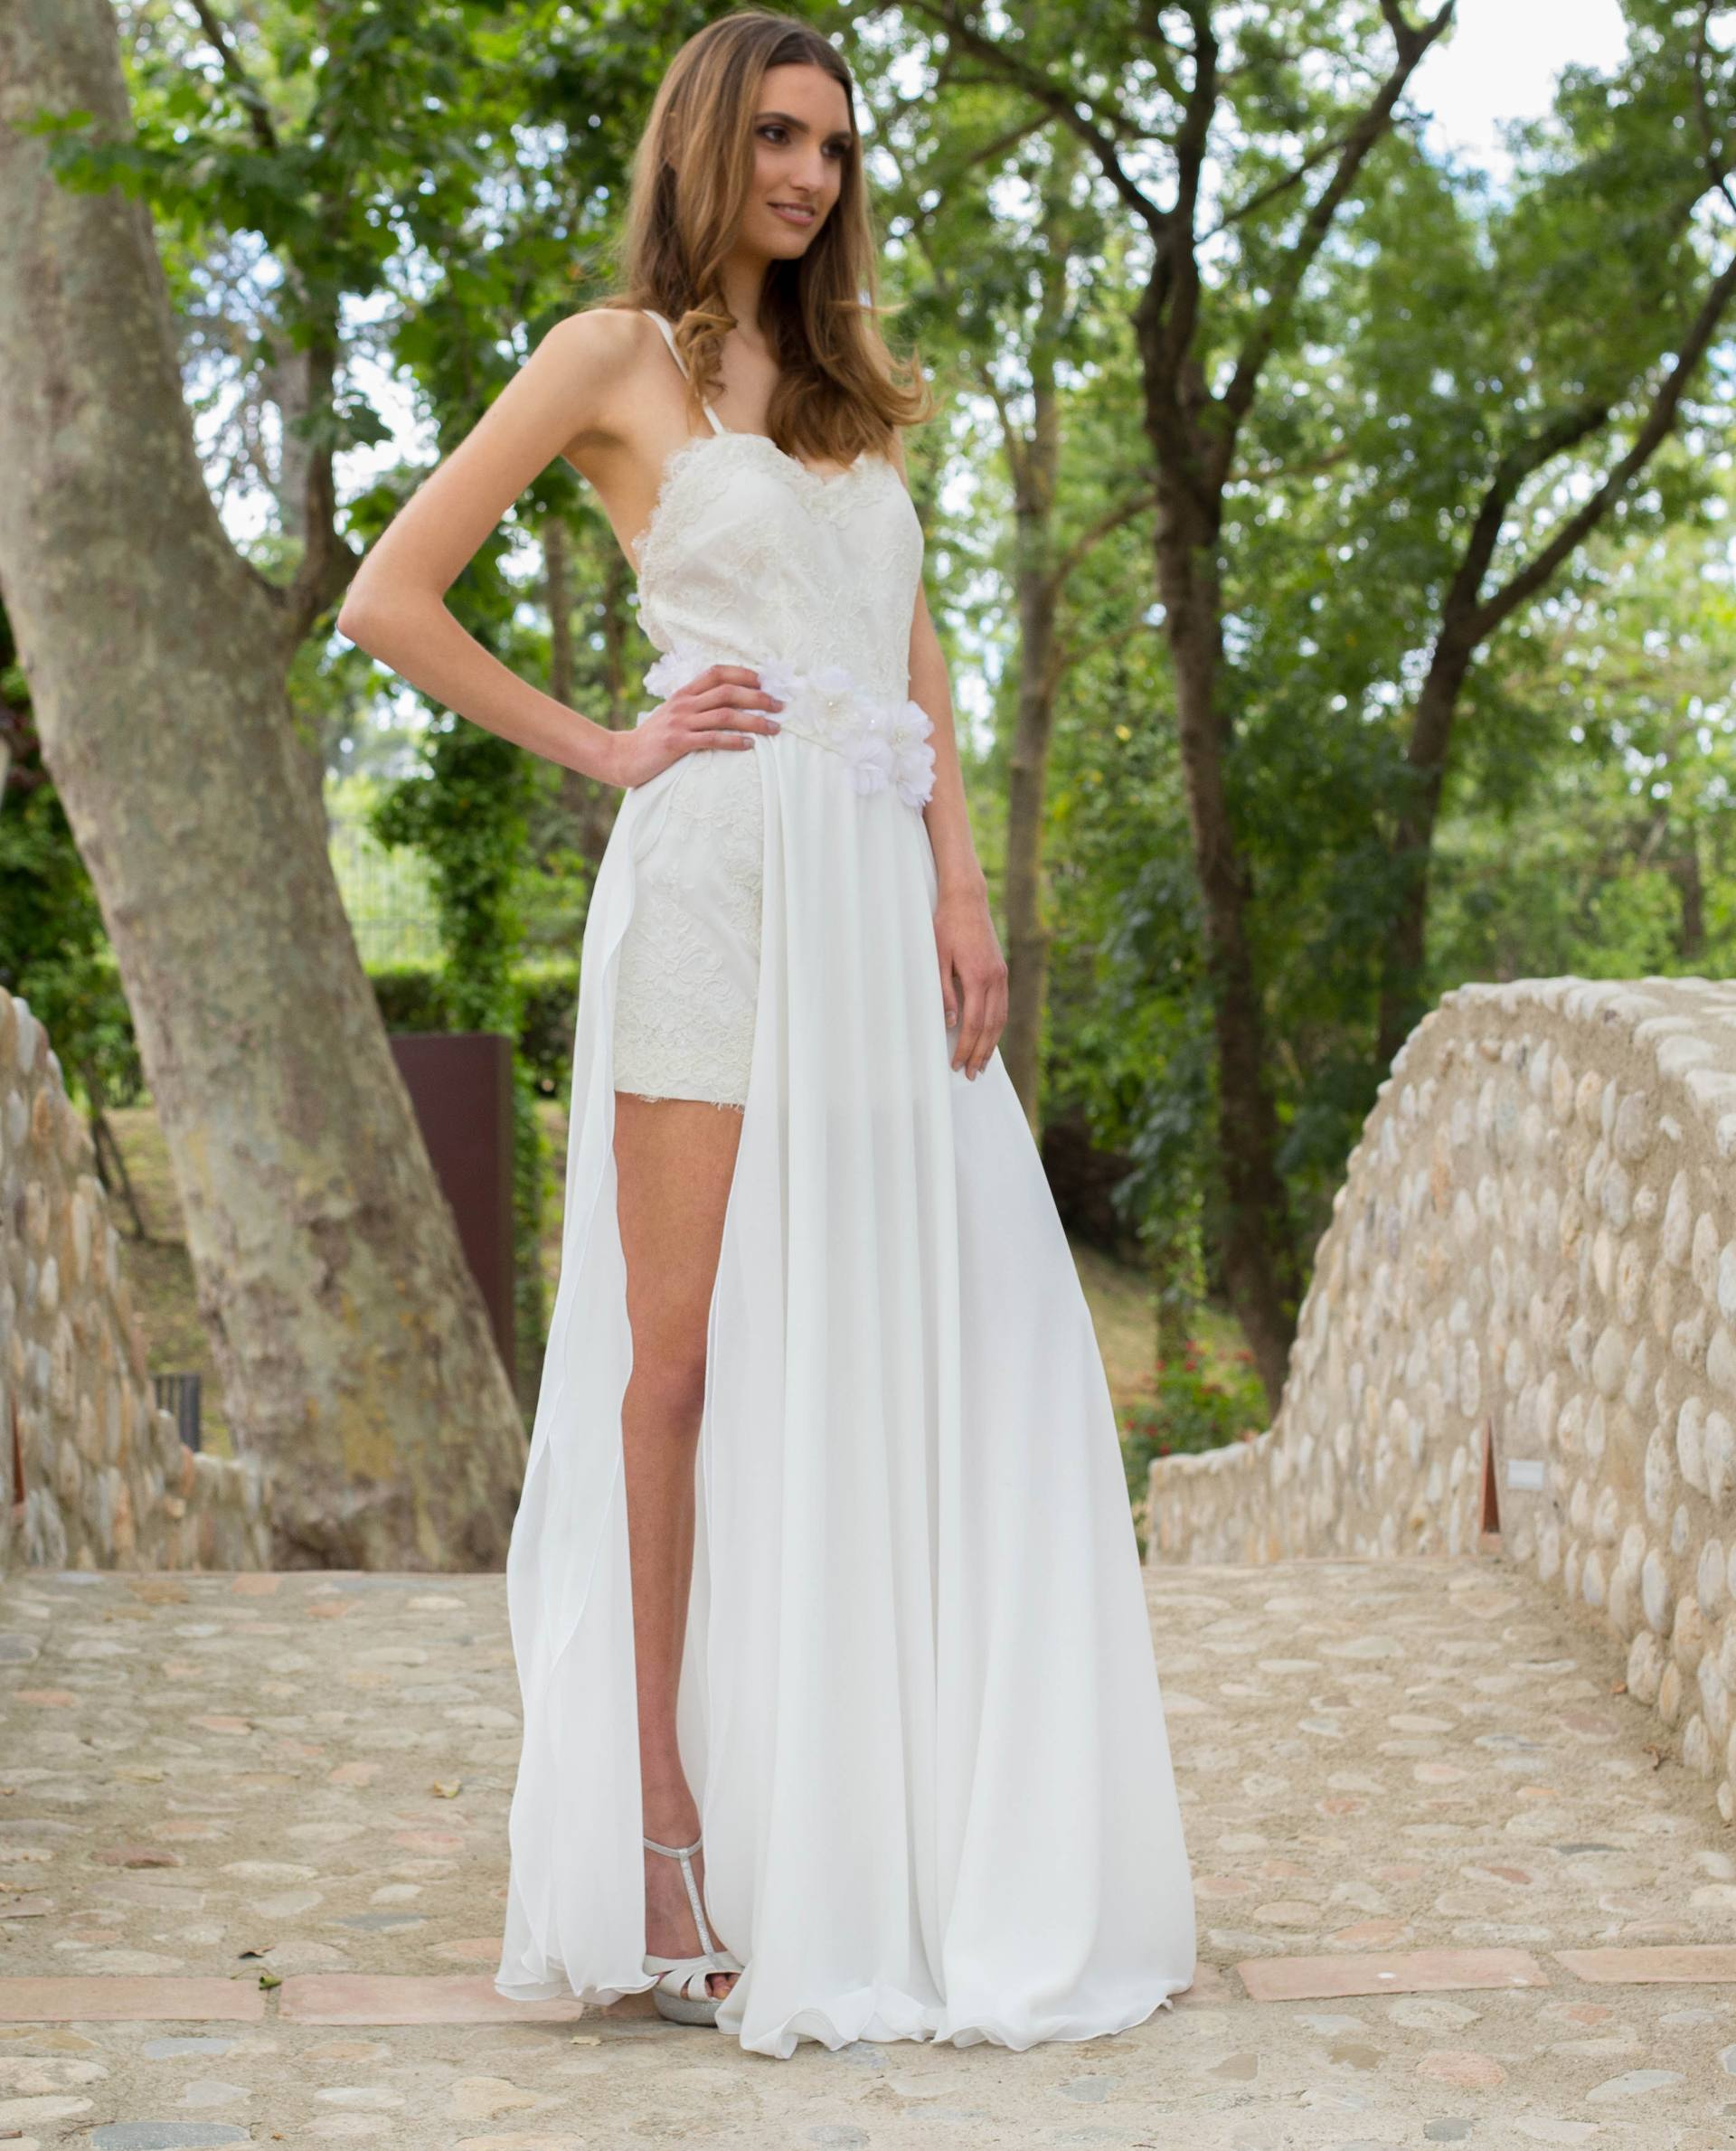 BRIDAL-NATURE 2019/20 - FALDAS - Falda novia Auril